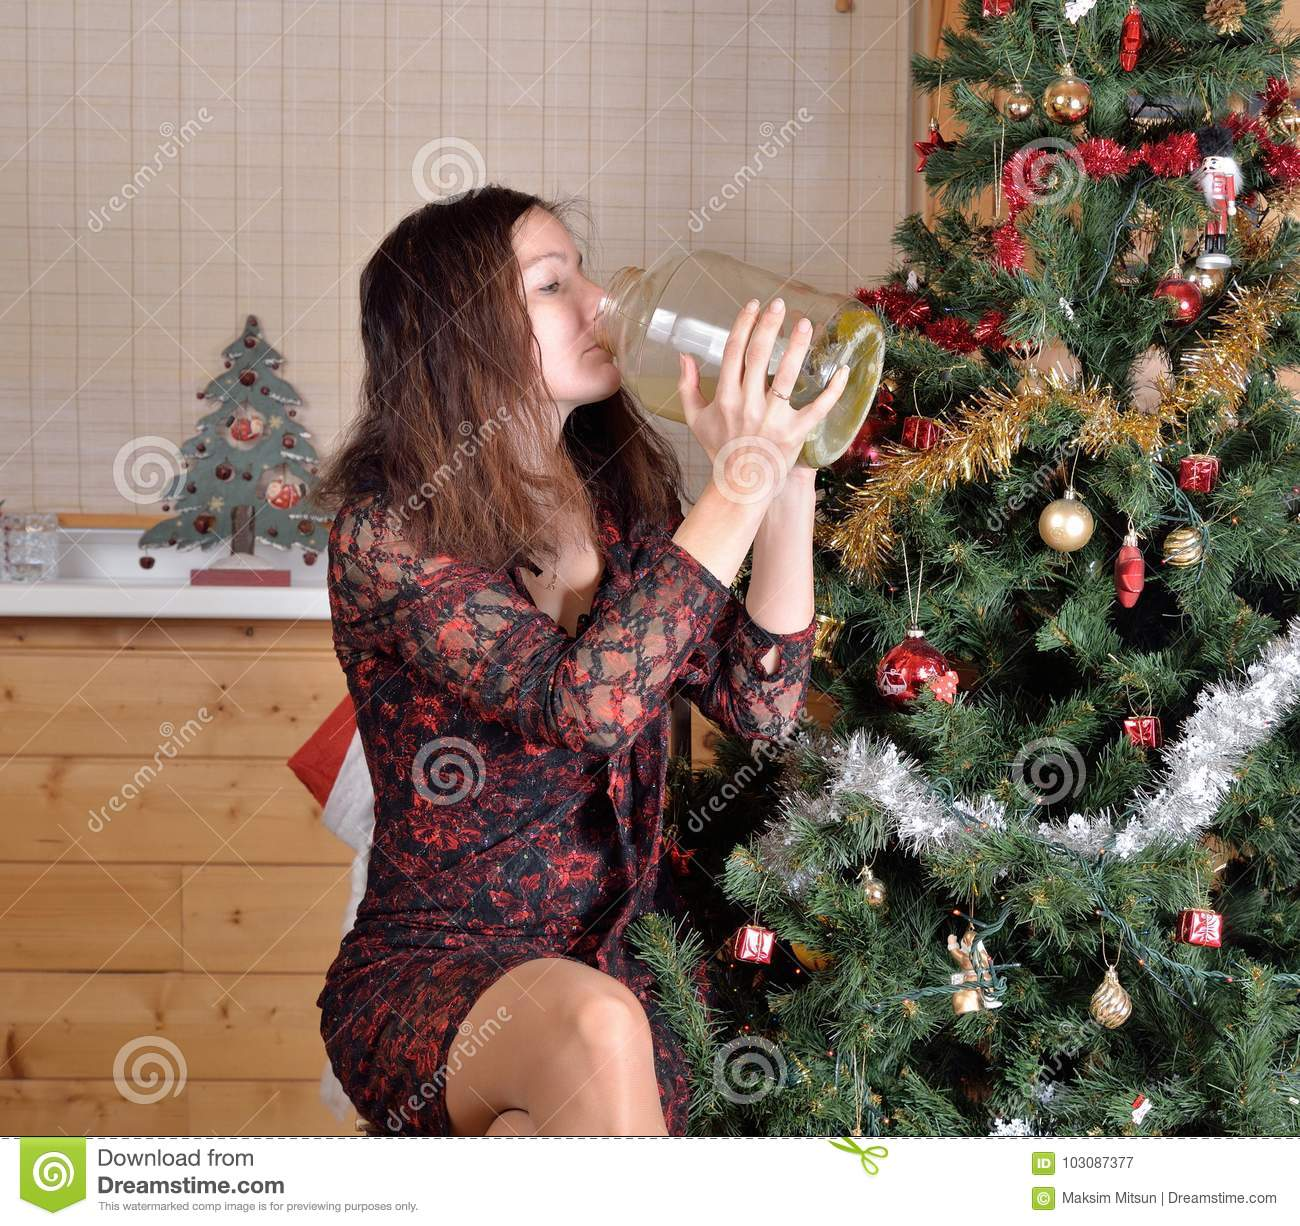 Woman Drinking Pickle Juice From The Jar At The Christmas Tree Stock